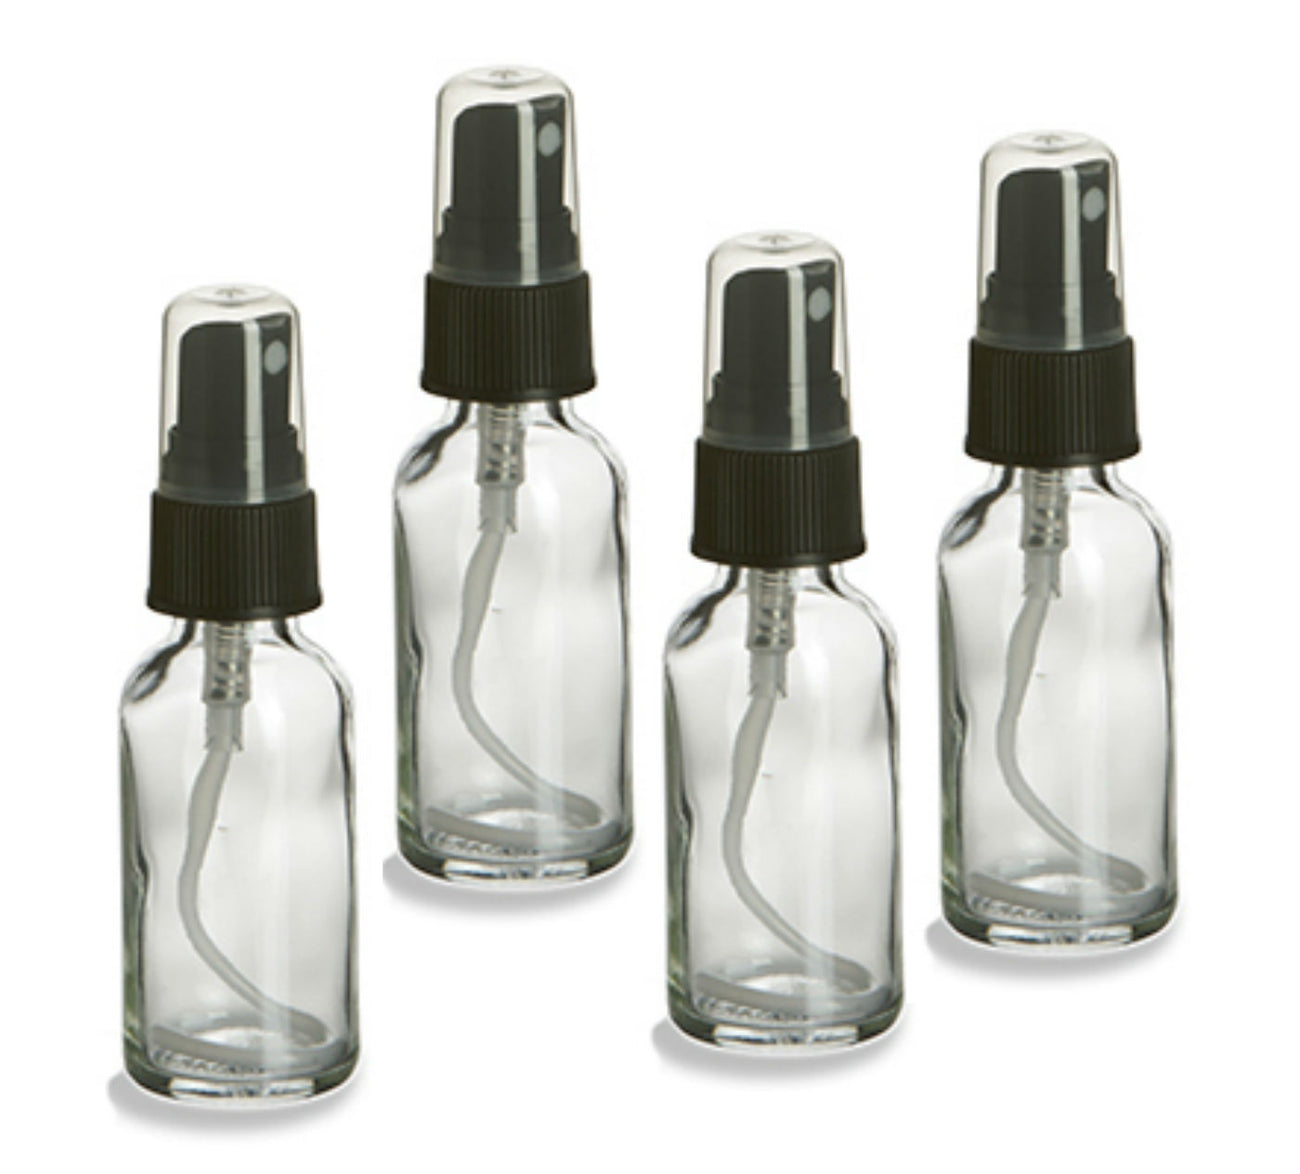 2oz Glass Spray Bottles - Pack of 4 Clear Bottles with Caps